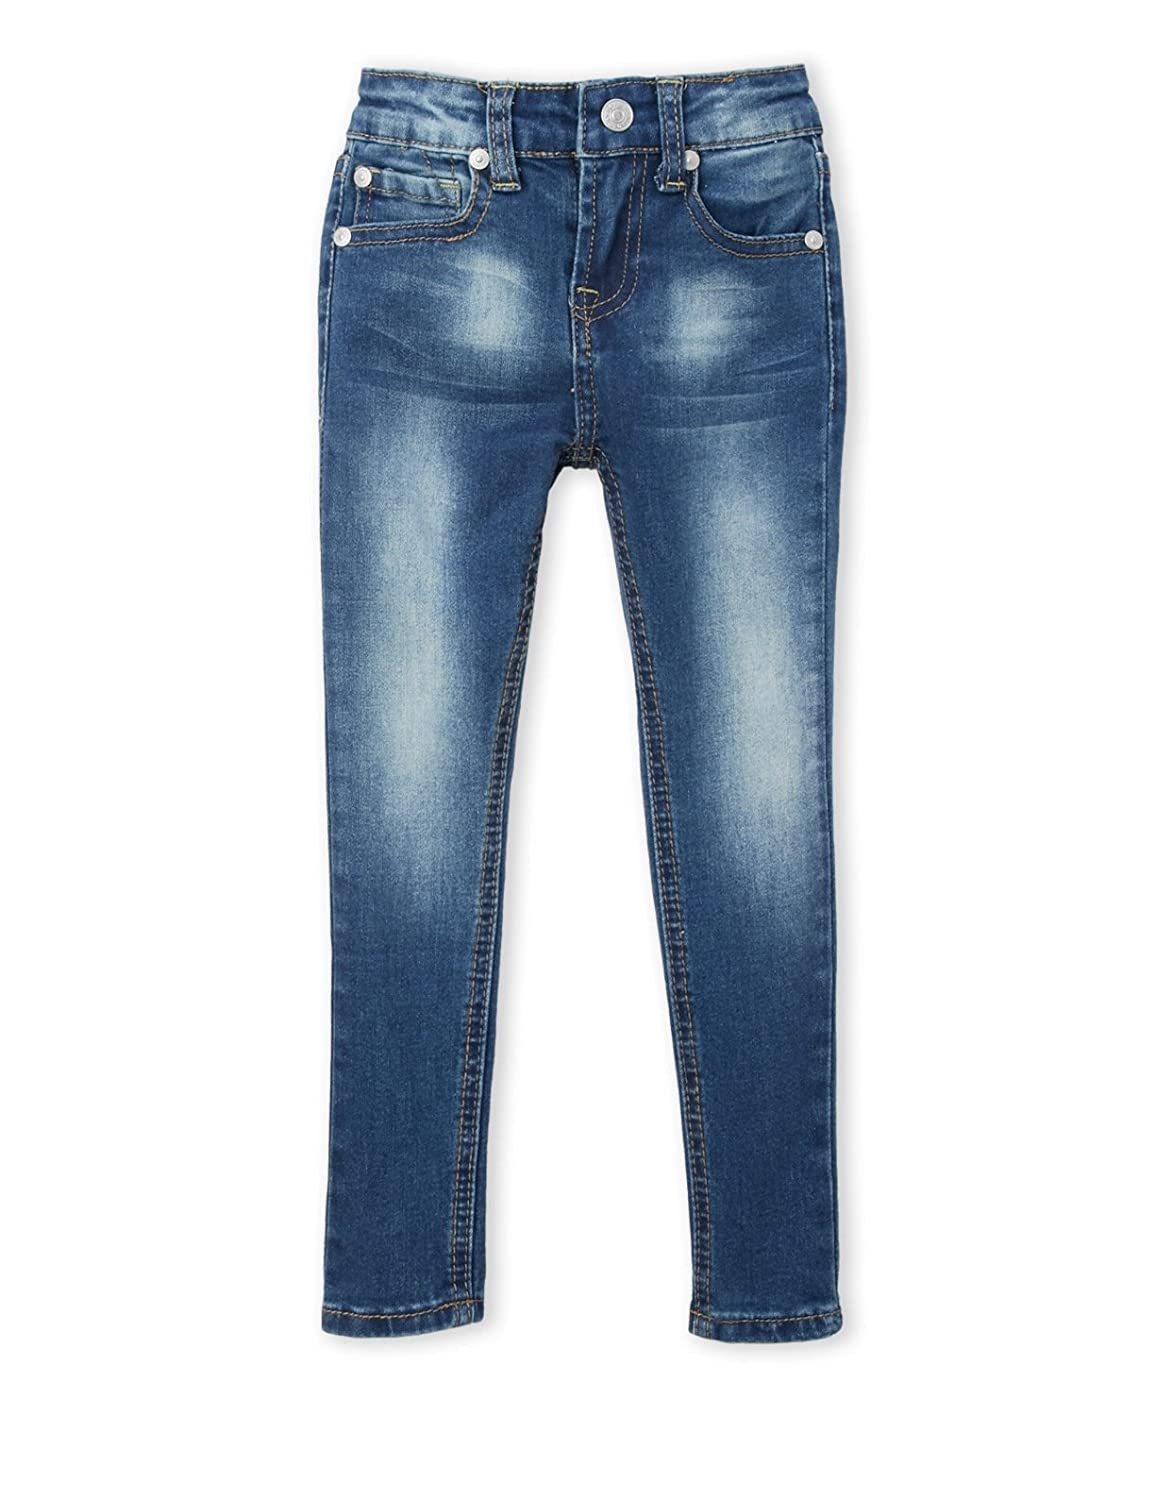 6 7 for all mankind Girls Super Skinny Stretch Jeans